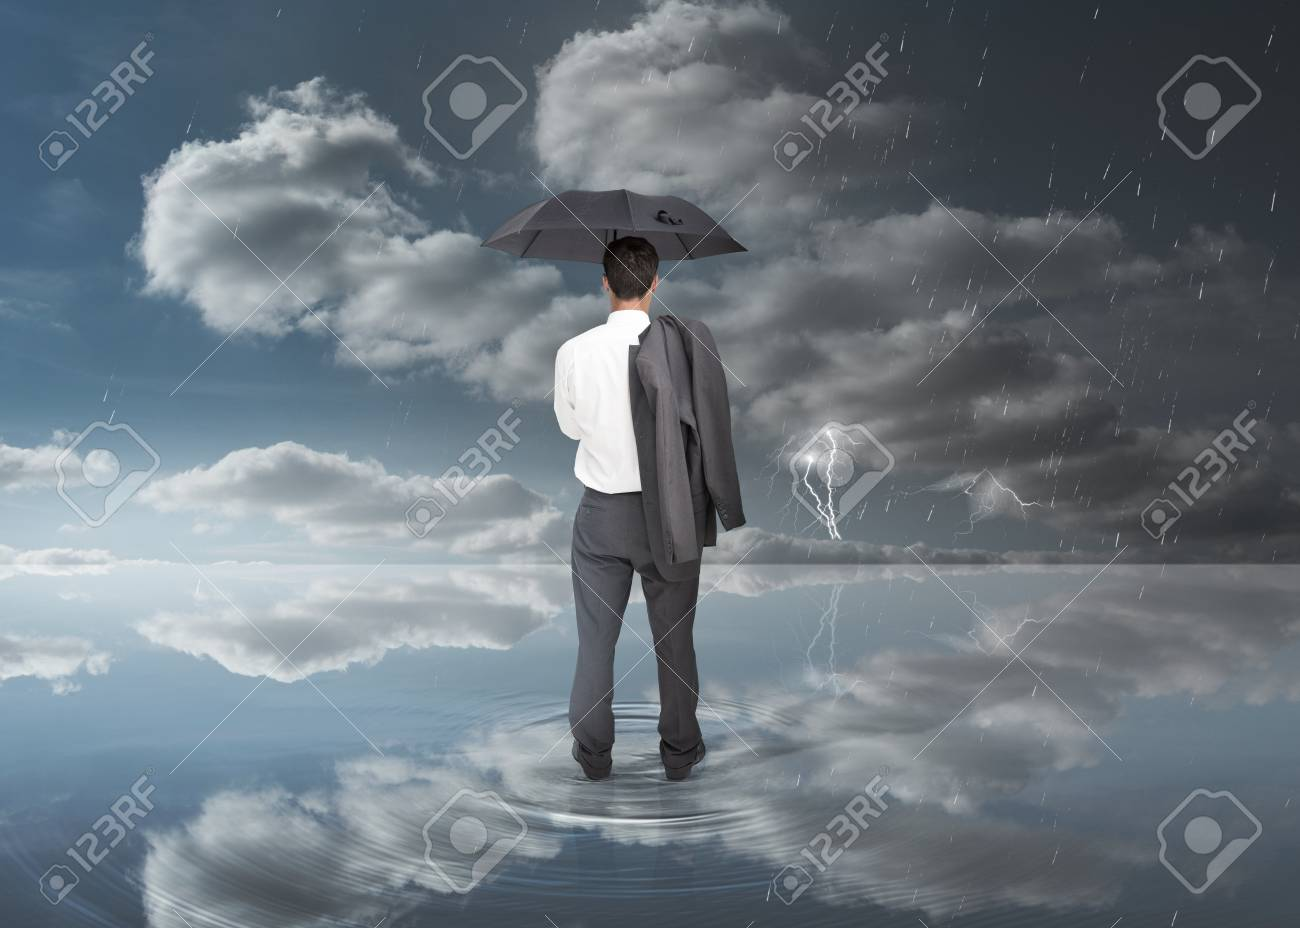 Businessman holding a black umbrella during stormy weather Stock Photo - 20625380